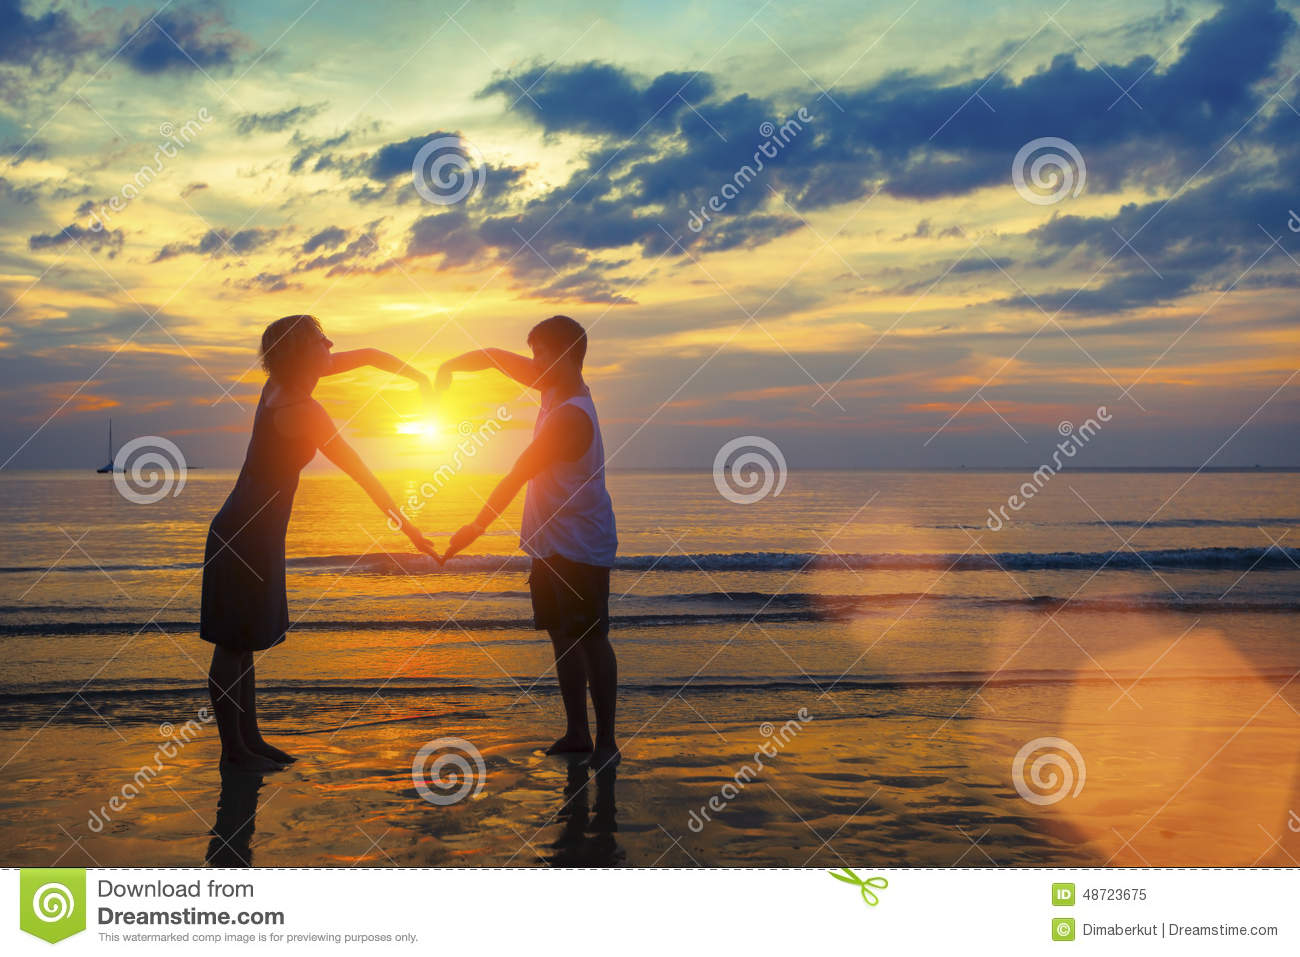 Sunset Heart Hands Stock Photos, Images, & Pictures.